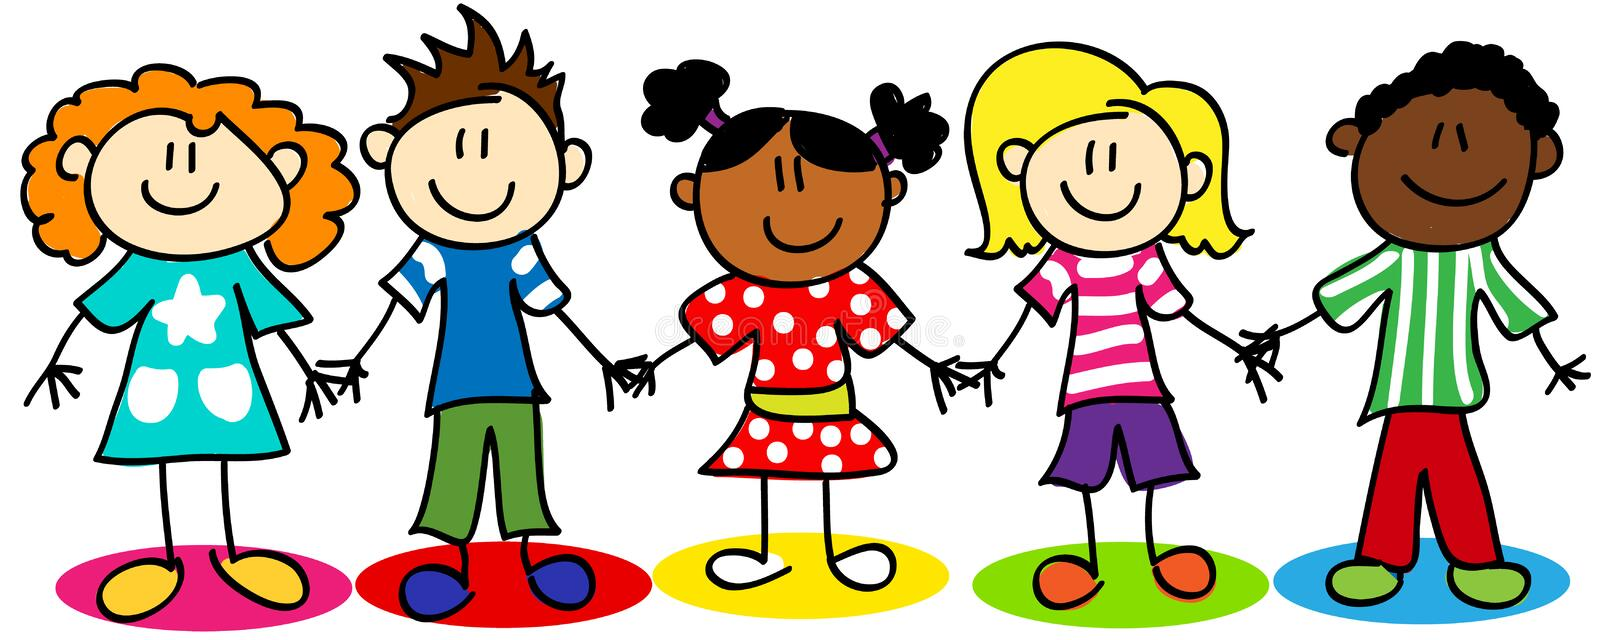 Stick figure ethnic diversity kids vector illustration